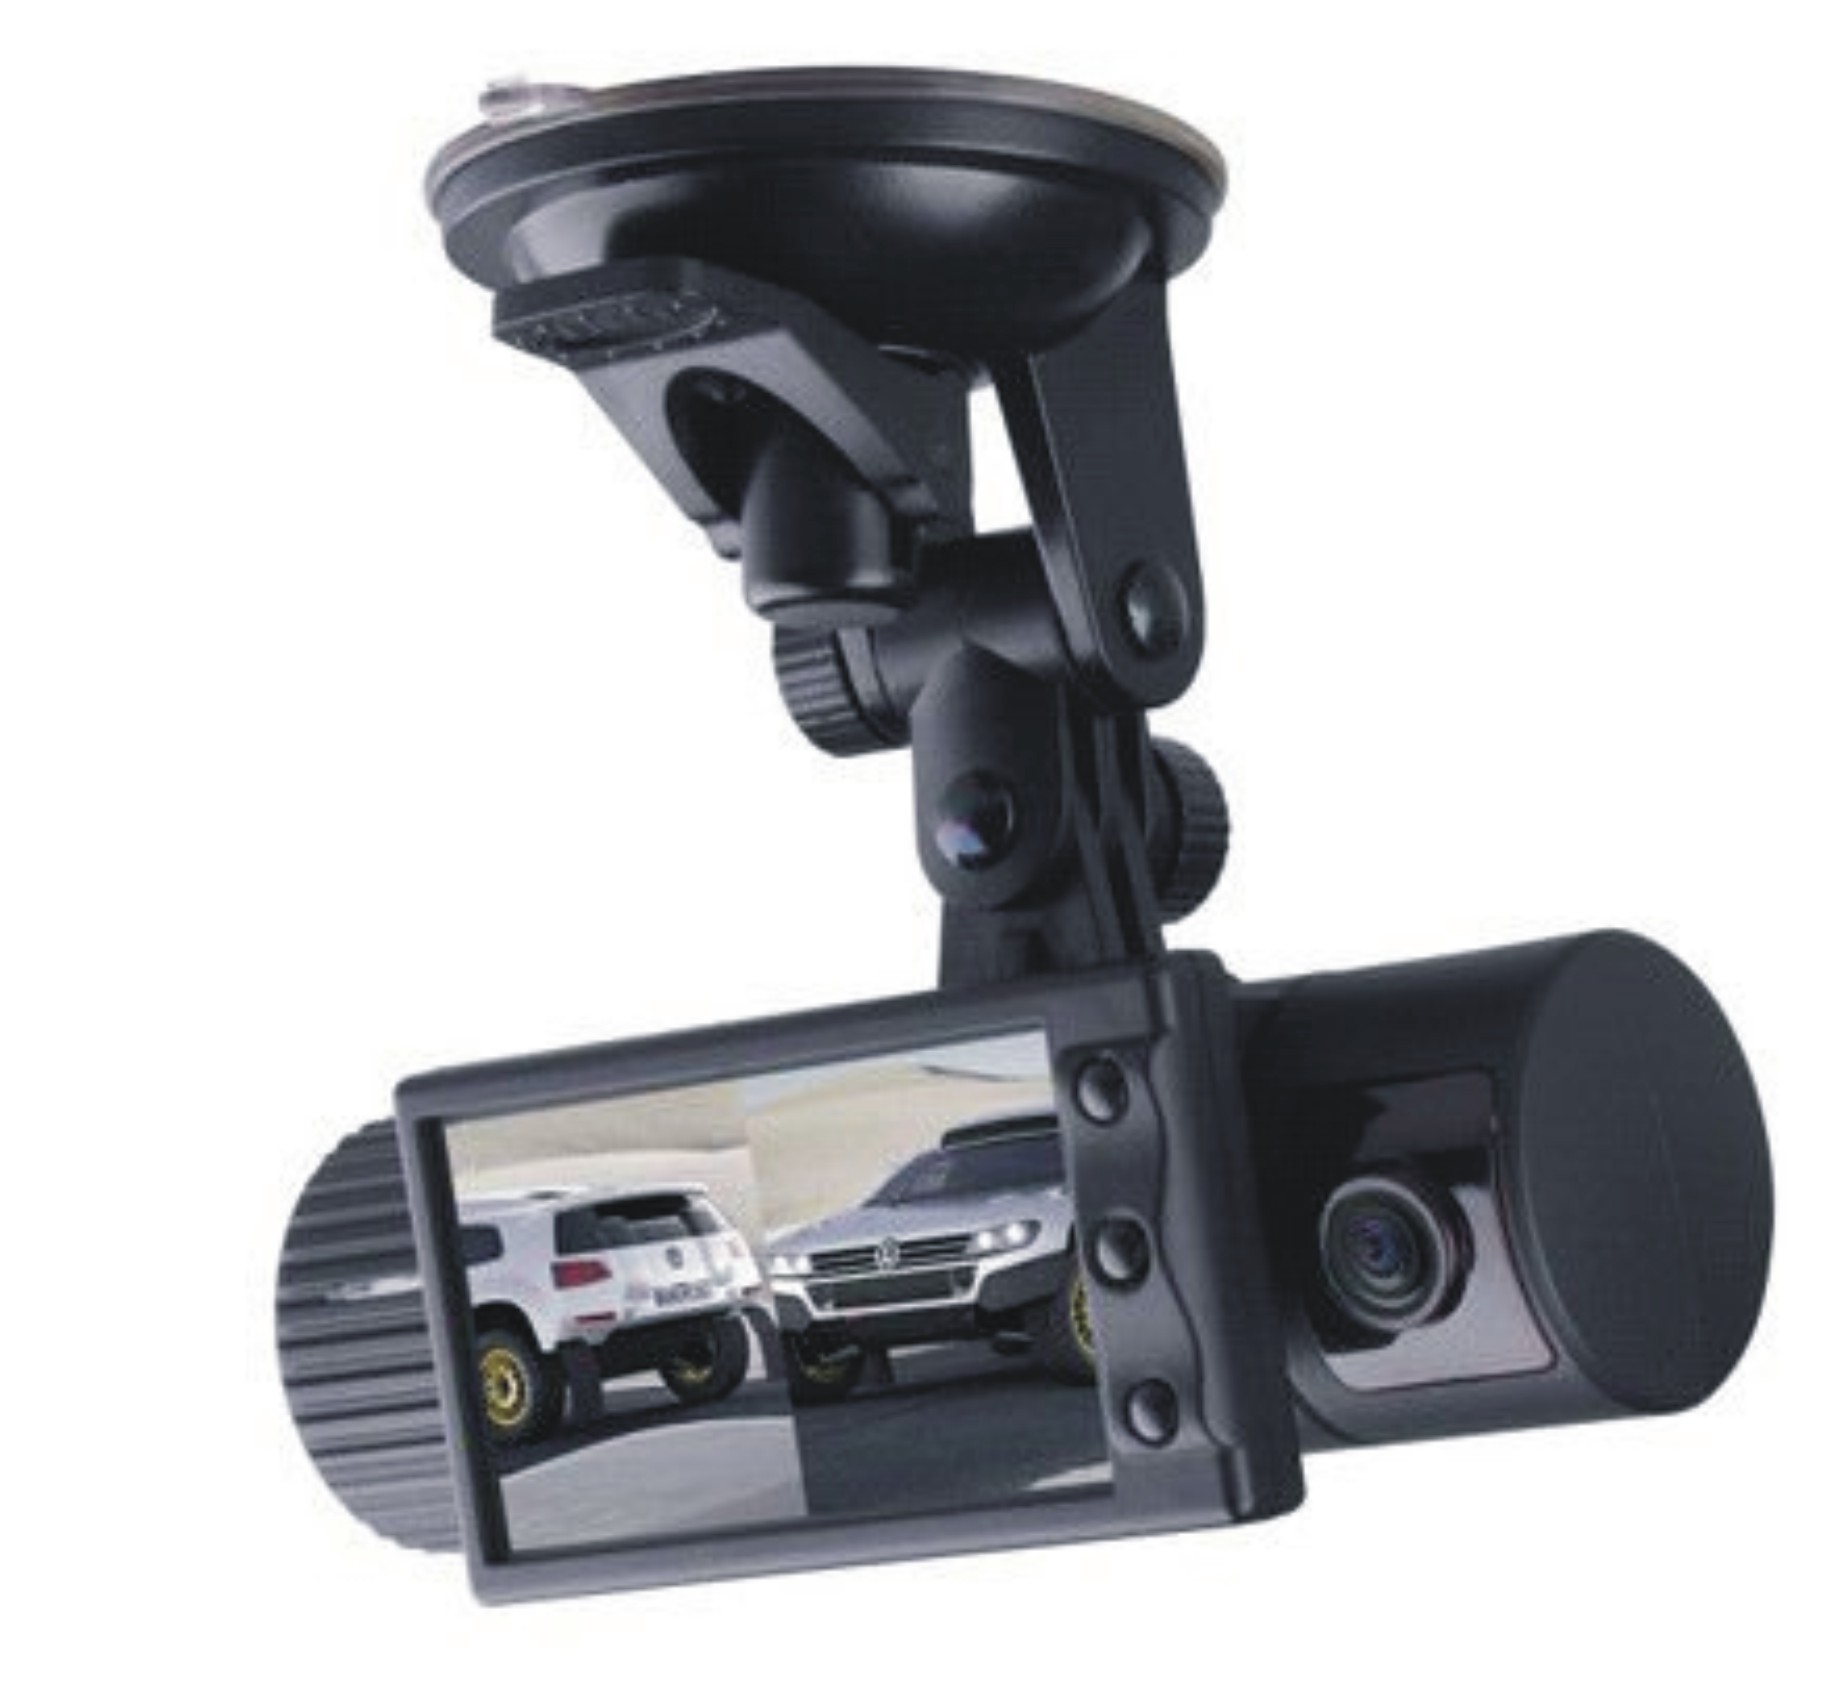 Dual Lens Dashboard Camera In Jamshedpur